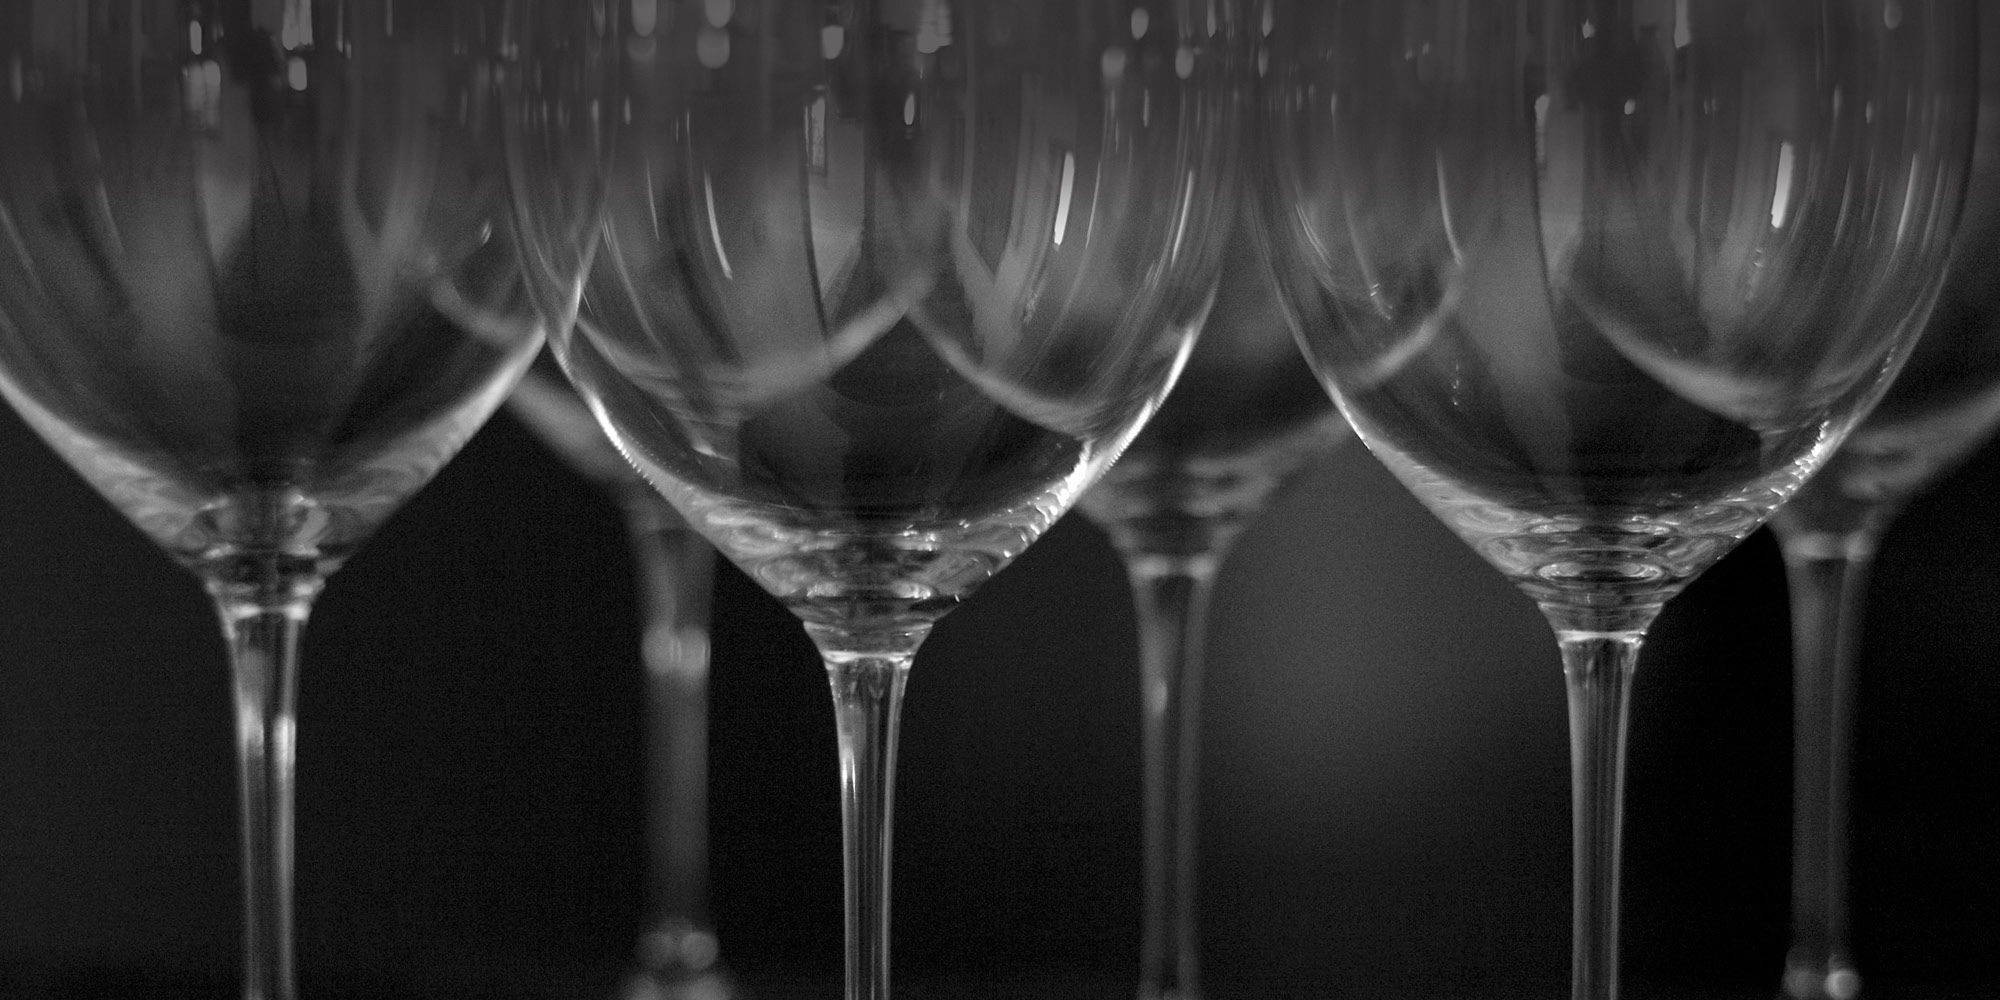 Monochrome Wines Paso Robles, CA wine glasses